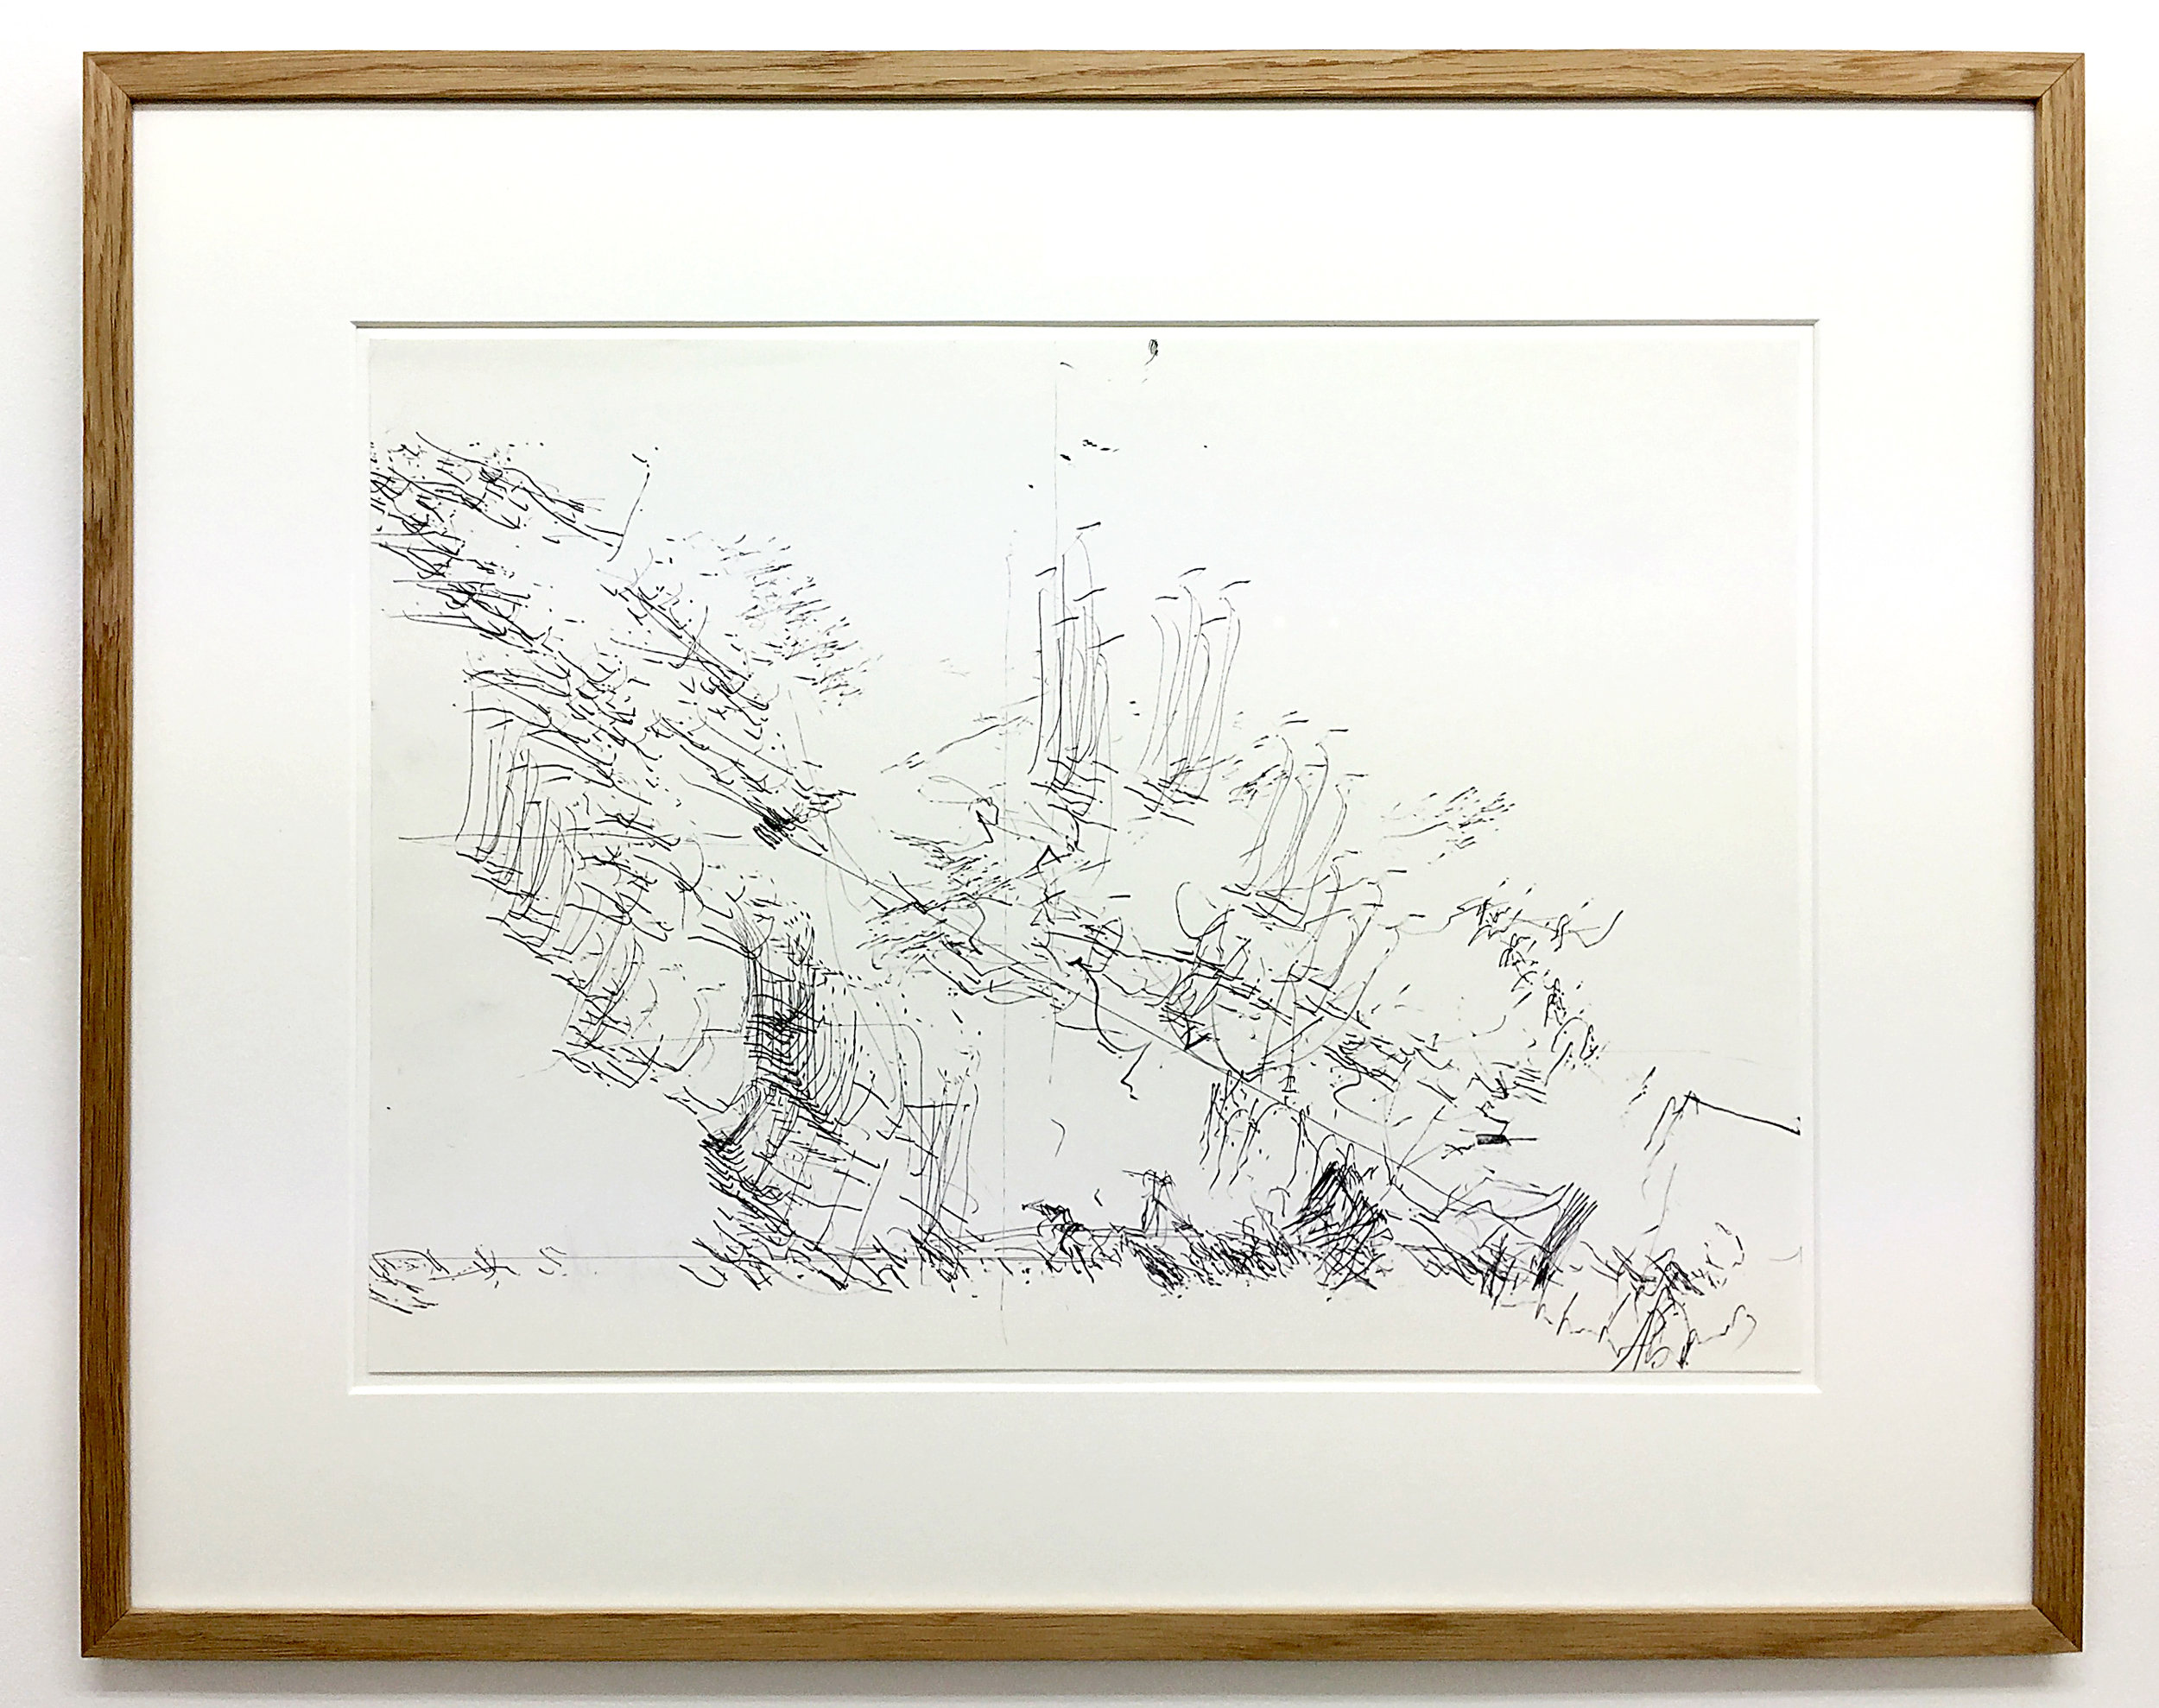 Freigeregelte apparative Zeichnungen (Untitled No.5) , 1990, magnetically manipulated plotter drawing / ink on paper, 45.5 x 58 cm